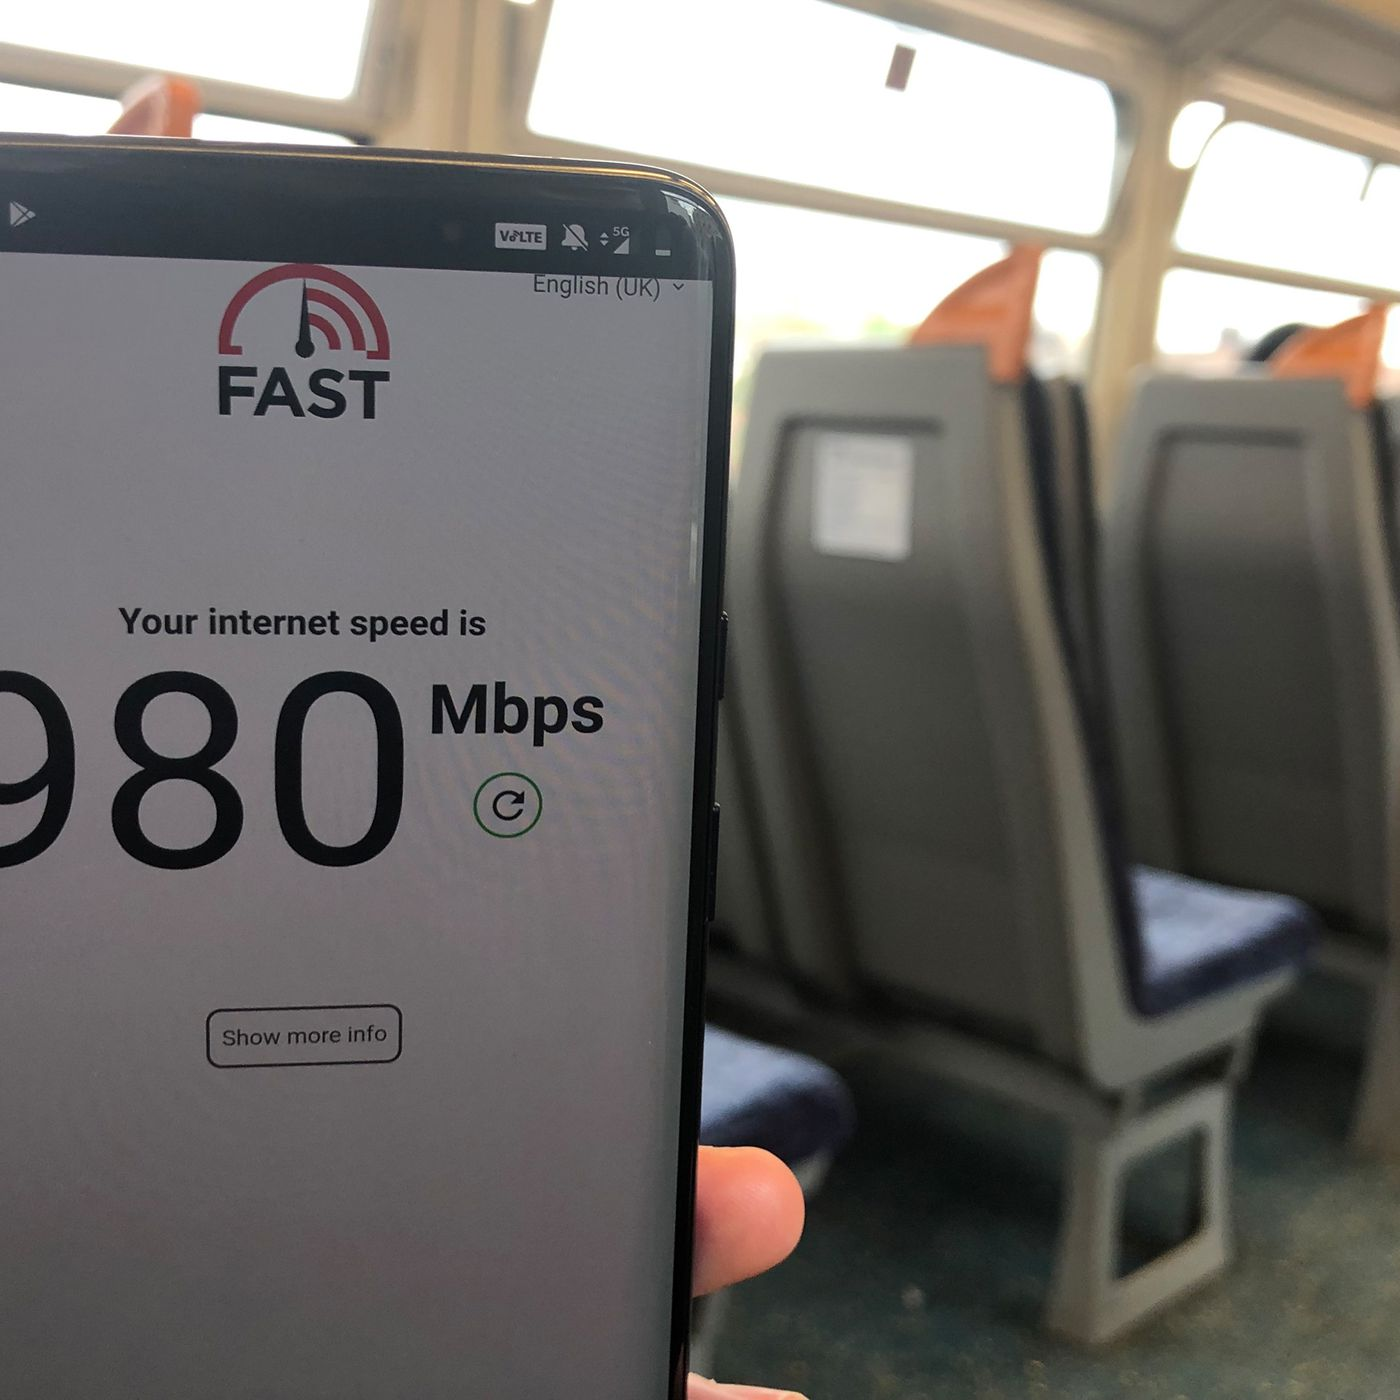 5G Speeds Australia 5g has arrived in the uk, and it's fast - the verge